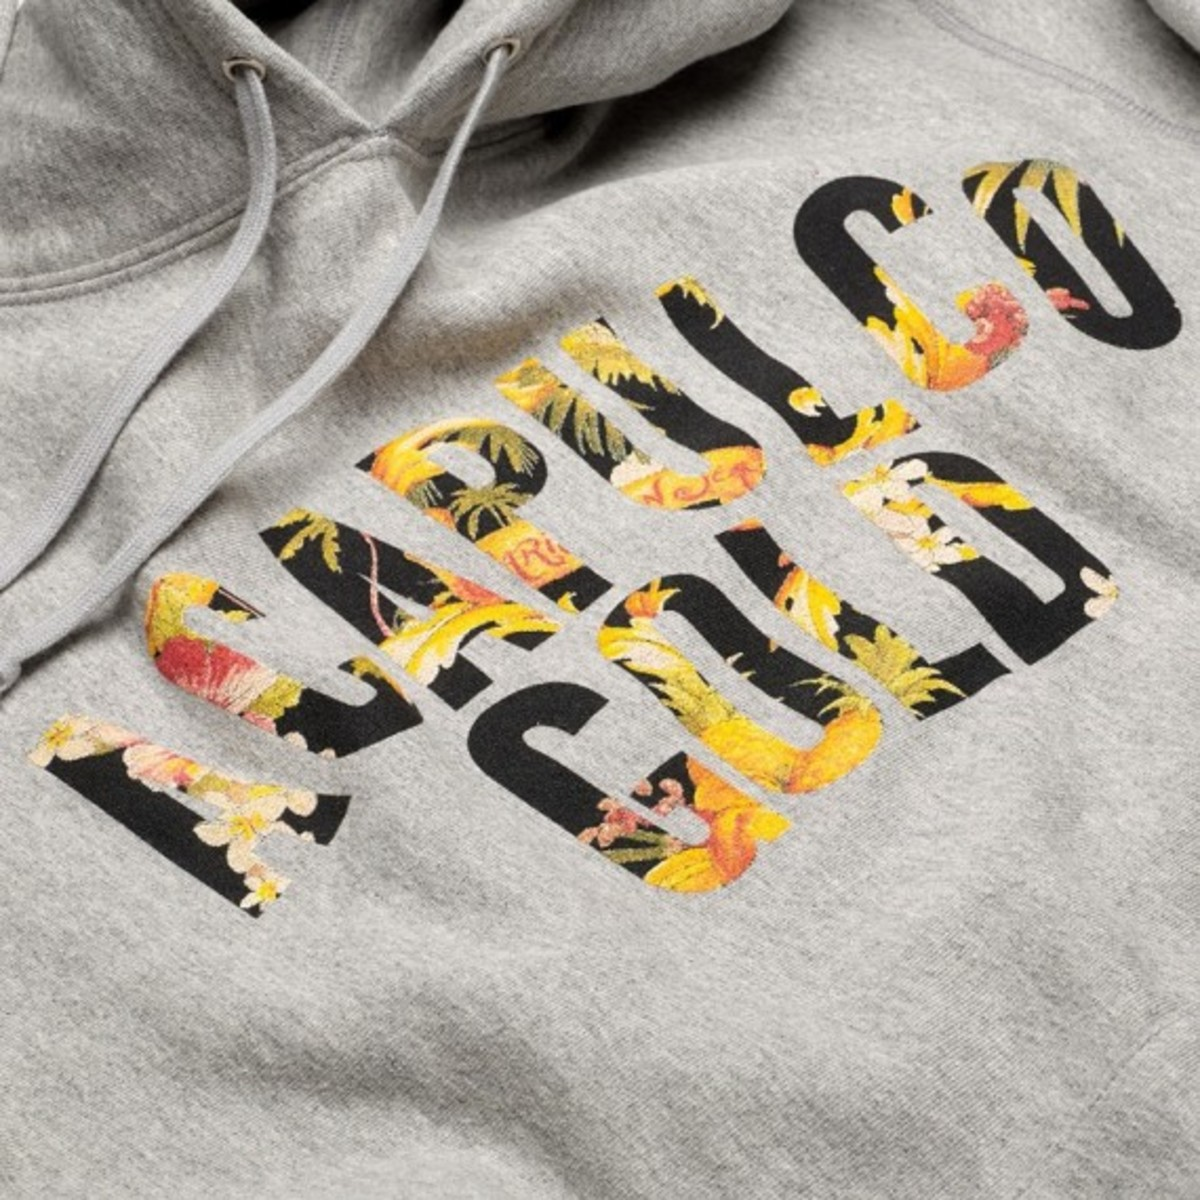 acapulco-gold-spring-2014-collection-delivery-1-05